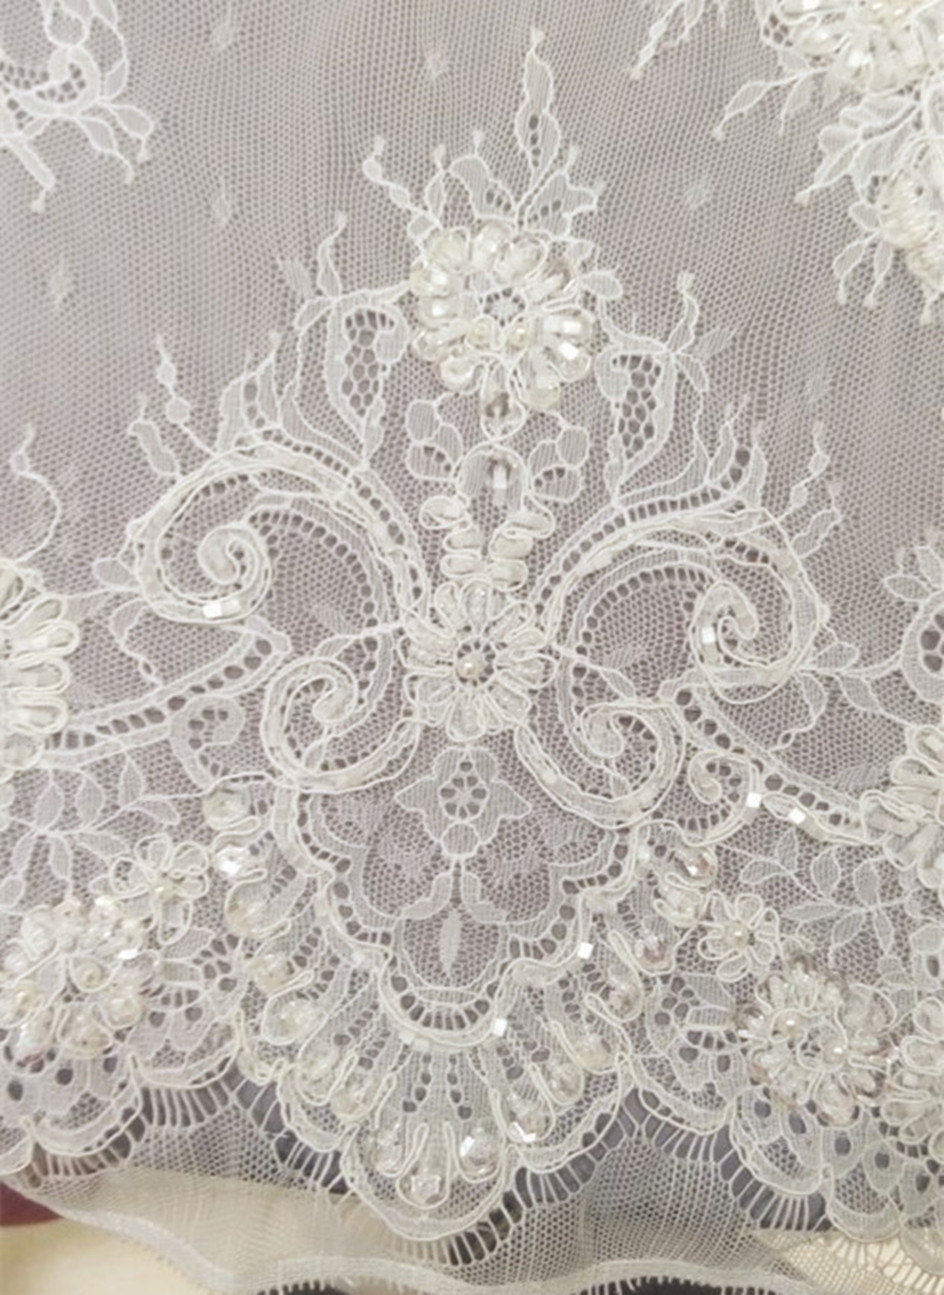 Online get cheap heavy beaded embroidery wedding dress fabric lace luxury bridal dress lace material 3yardspc embroidery sequins heavy wedding beaded lace fabric for formal dress fabric ombrellifo Images